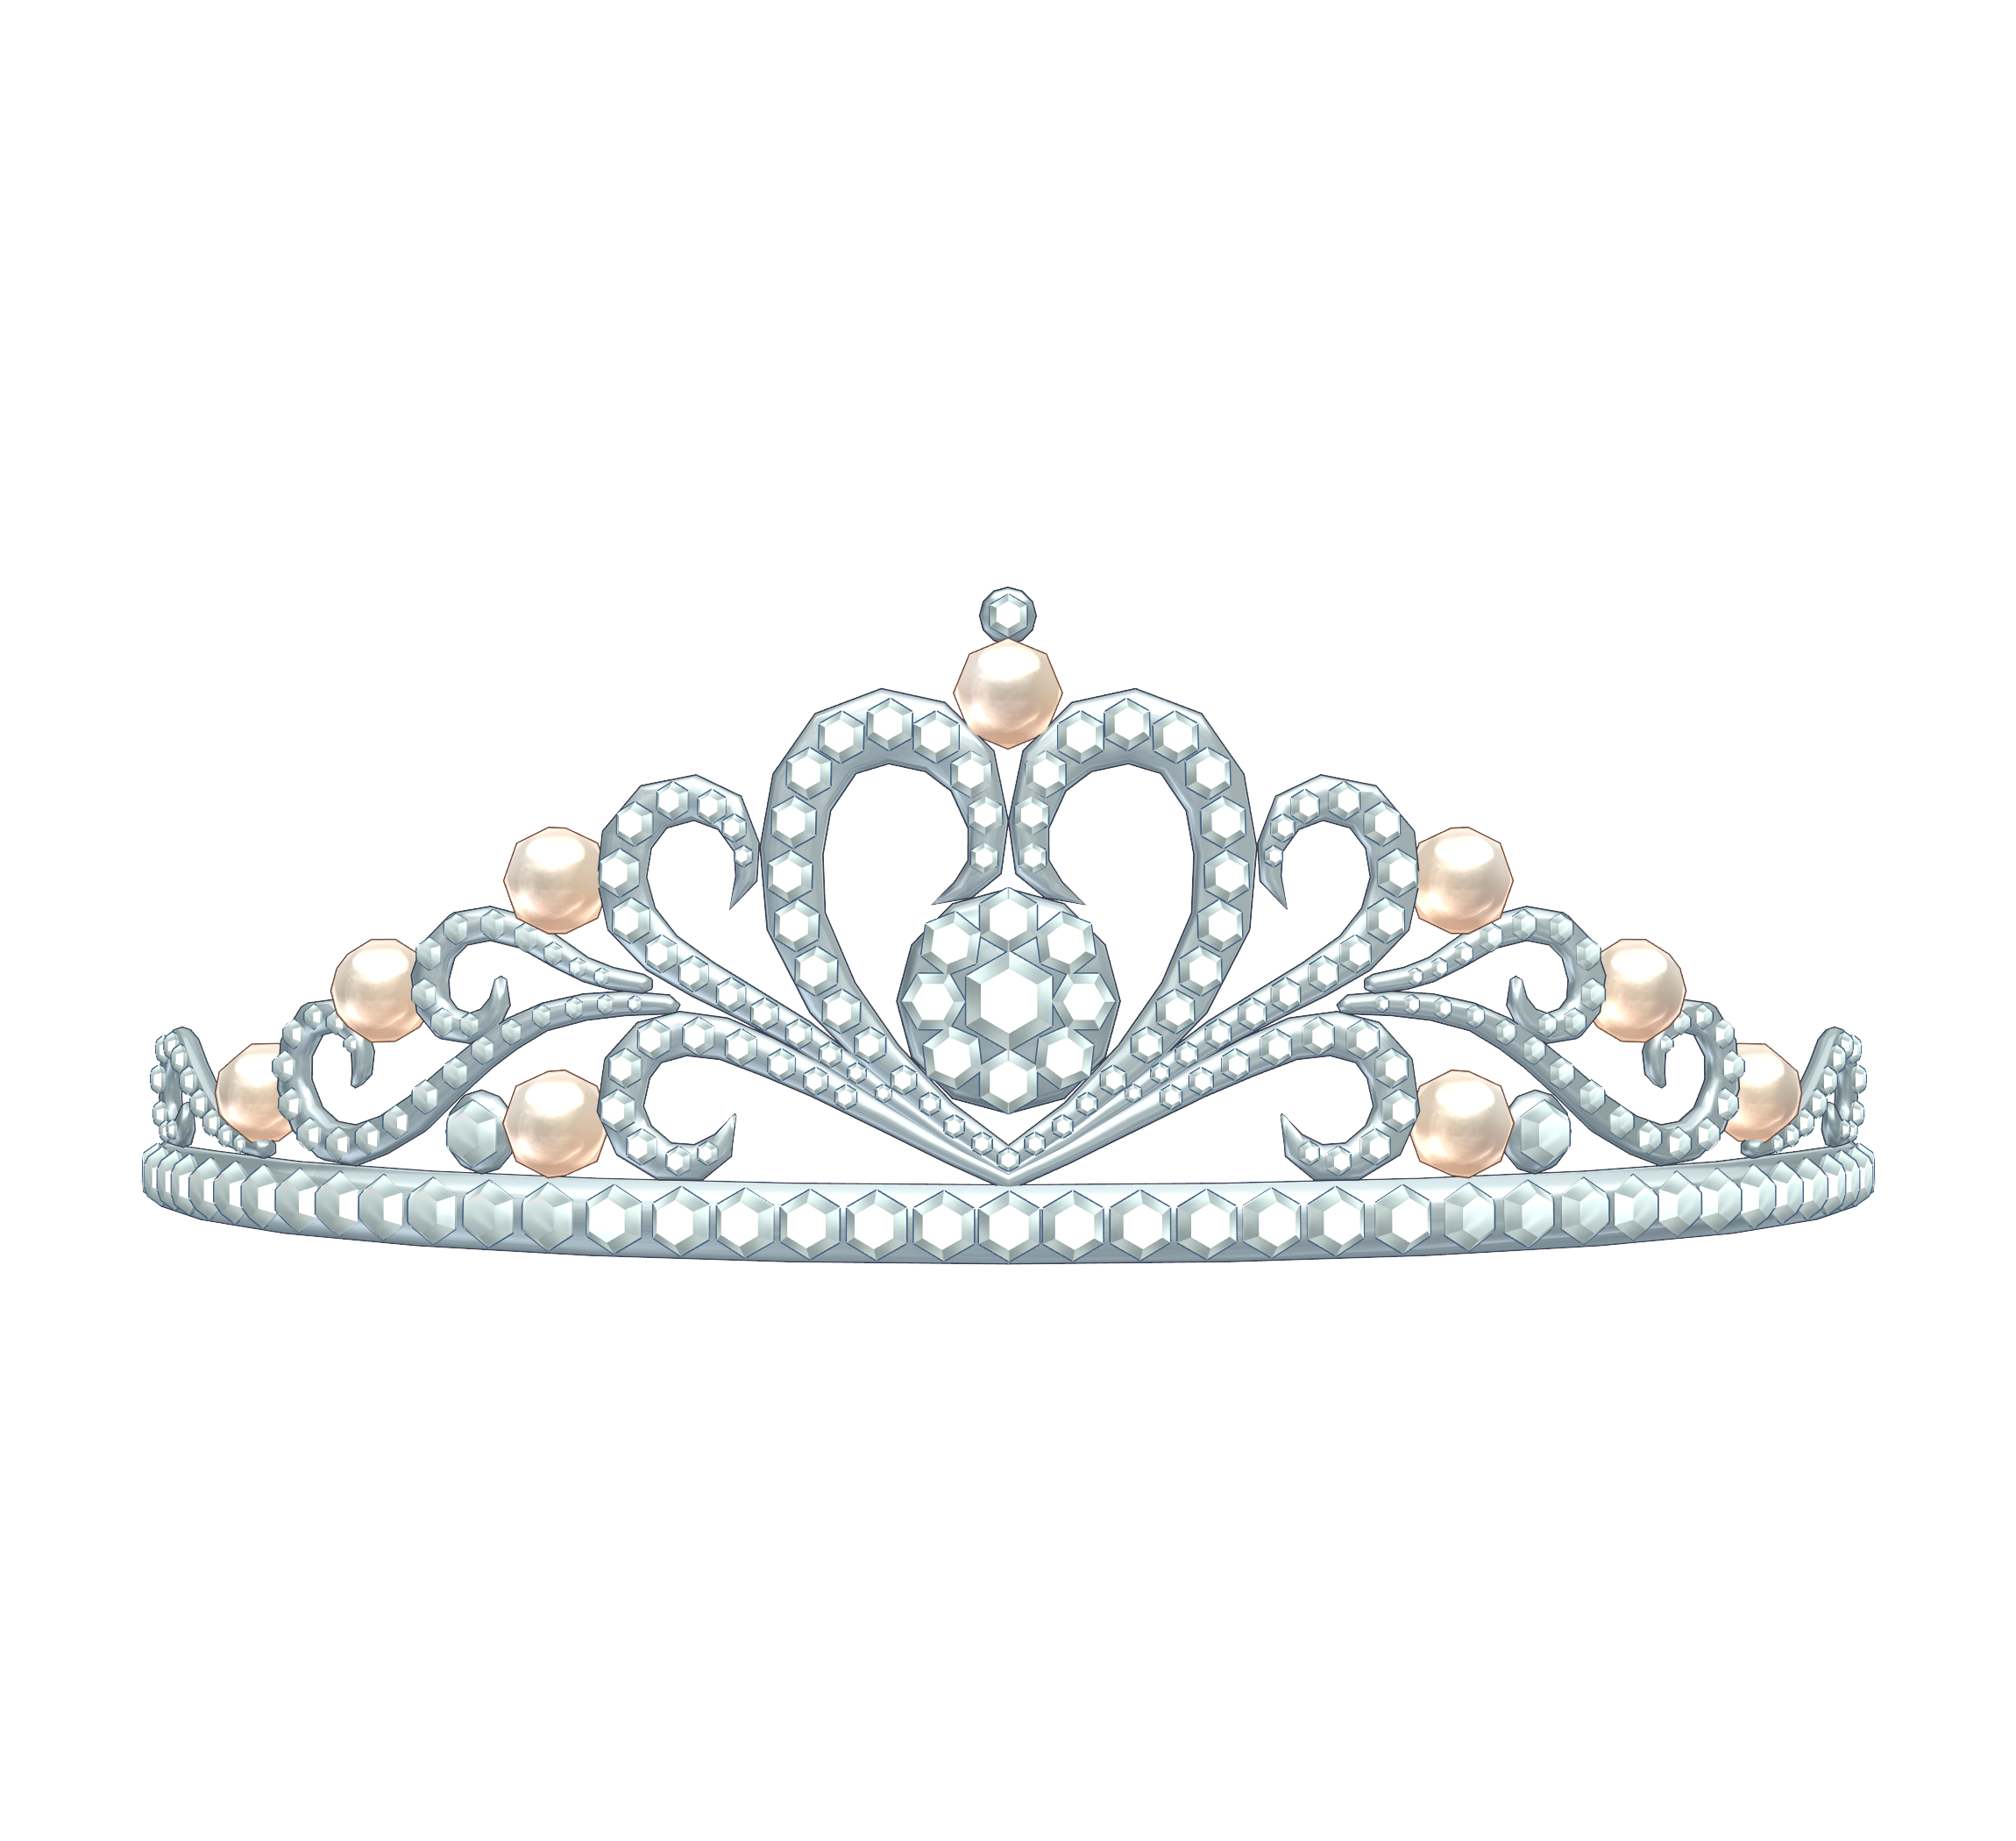 Silver crown clipart transparent background graphic black and white download Tiara PNG HD Transparent Tiara HD.PNG Images. | PlusPNG graphic black and white download